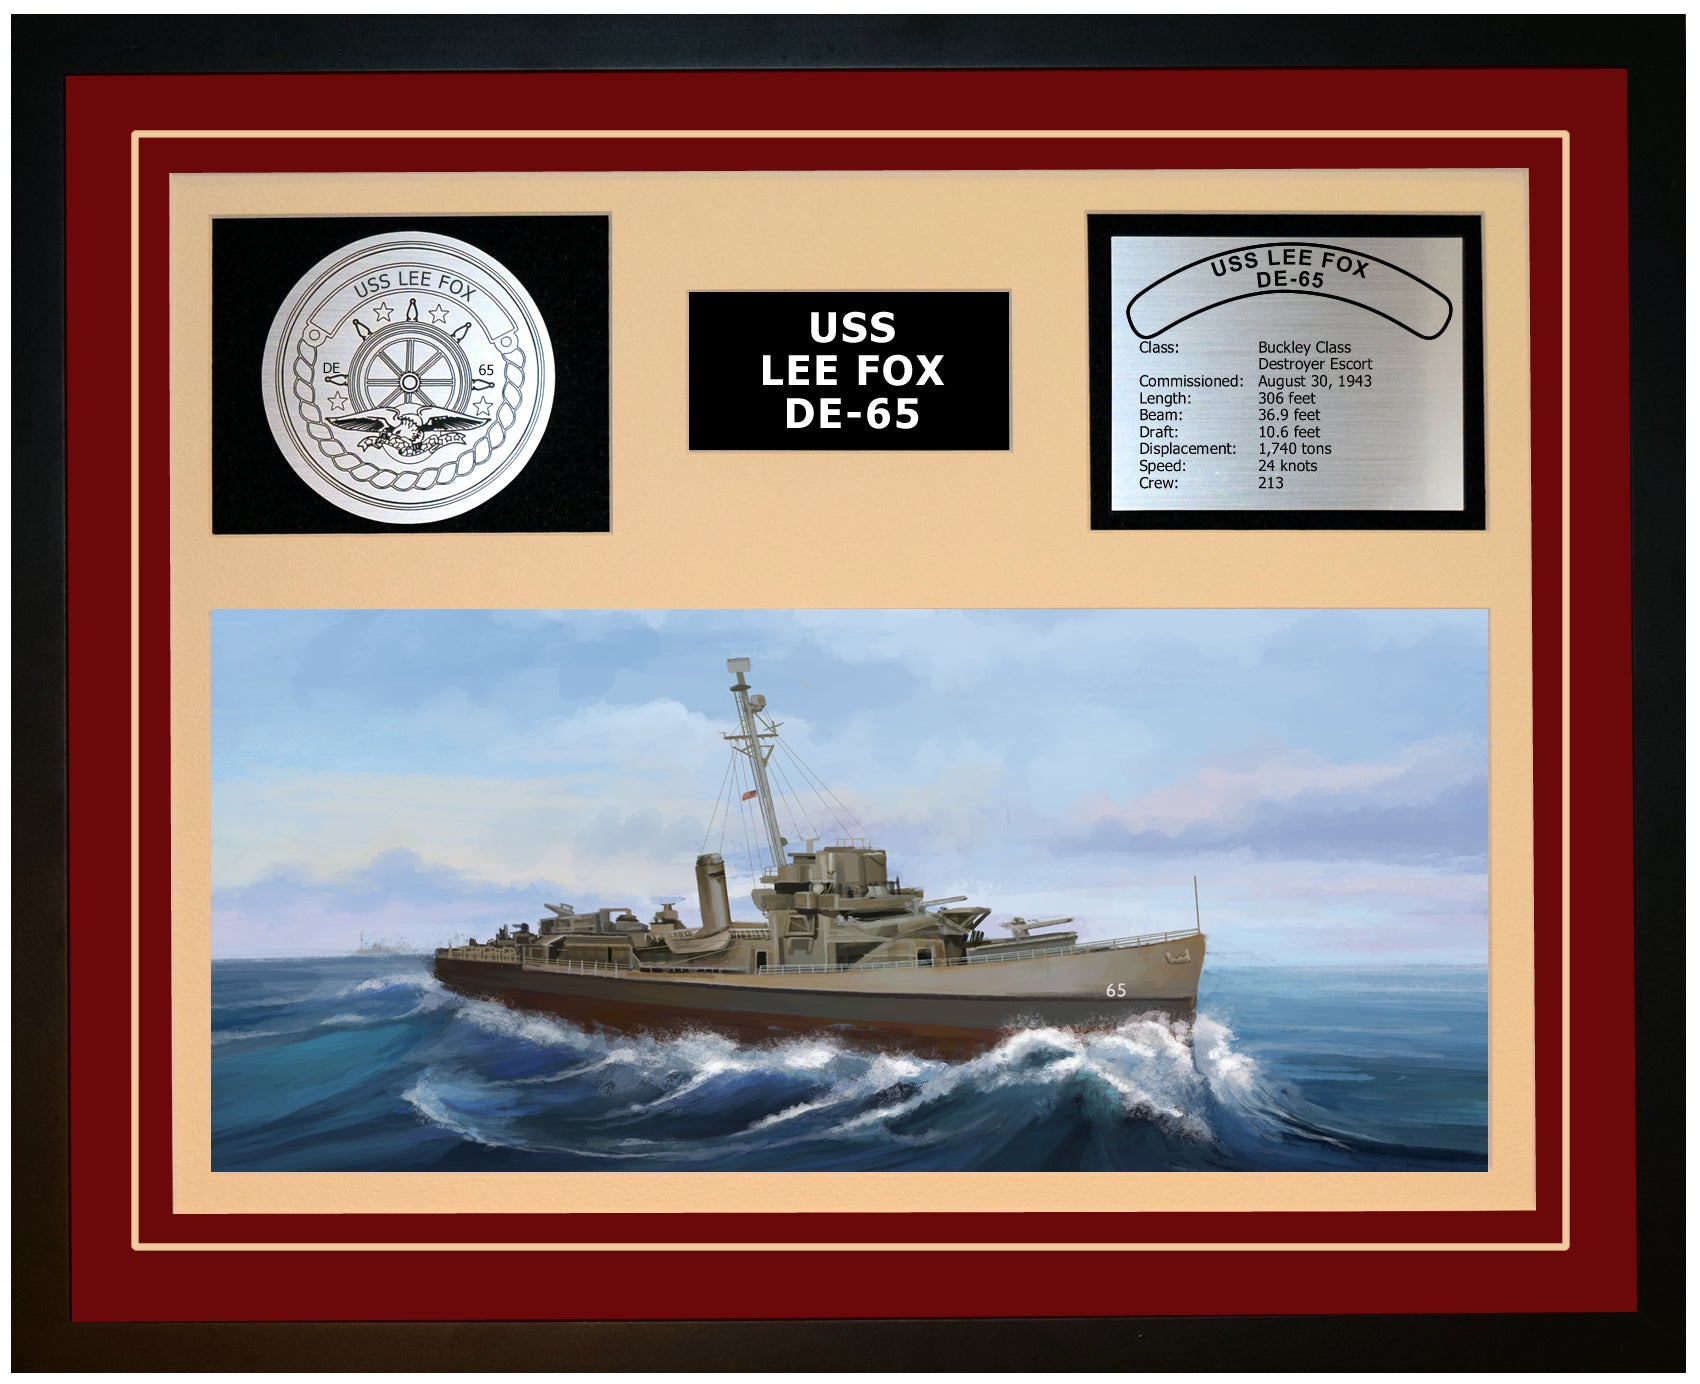 USS LEE FOX DE-65 Framed Navy Ship Display Burgundy